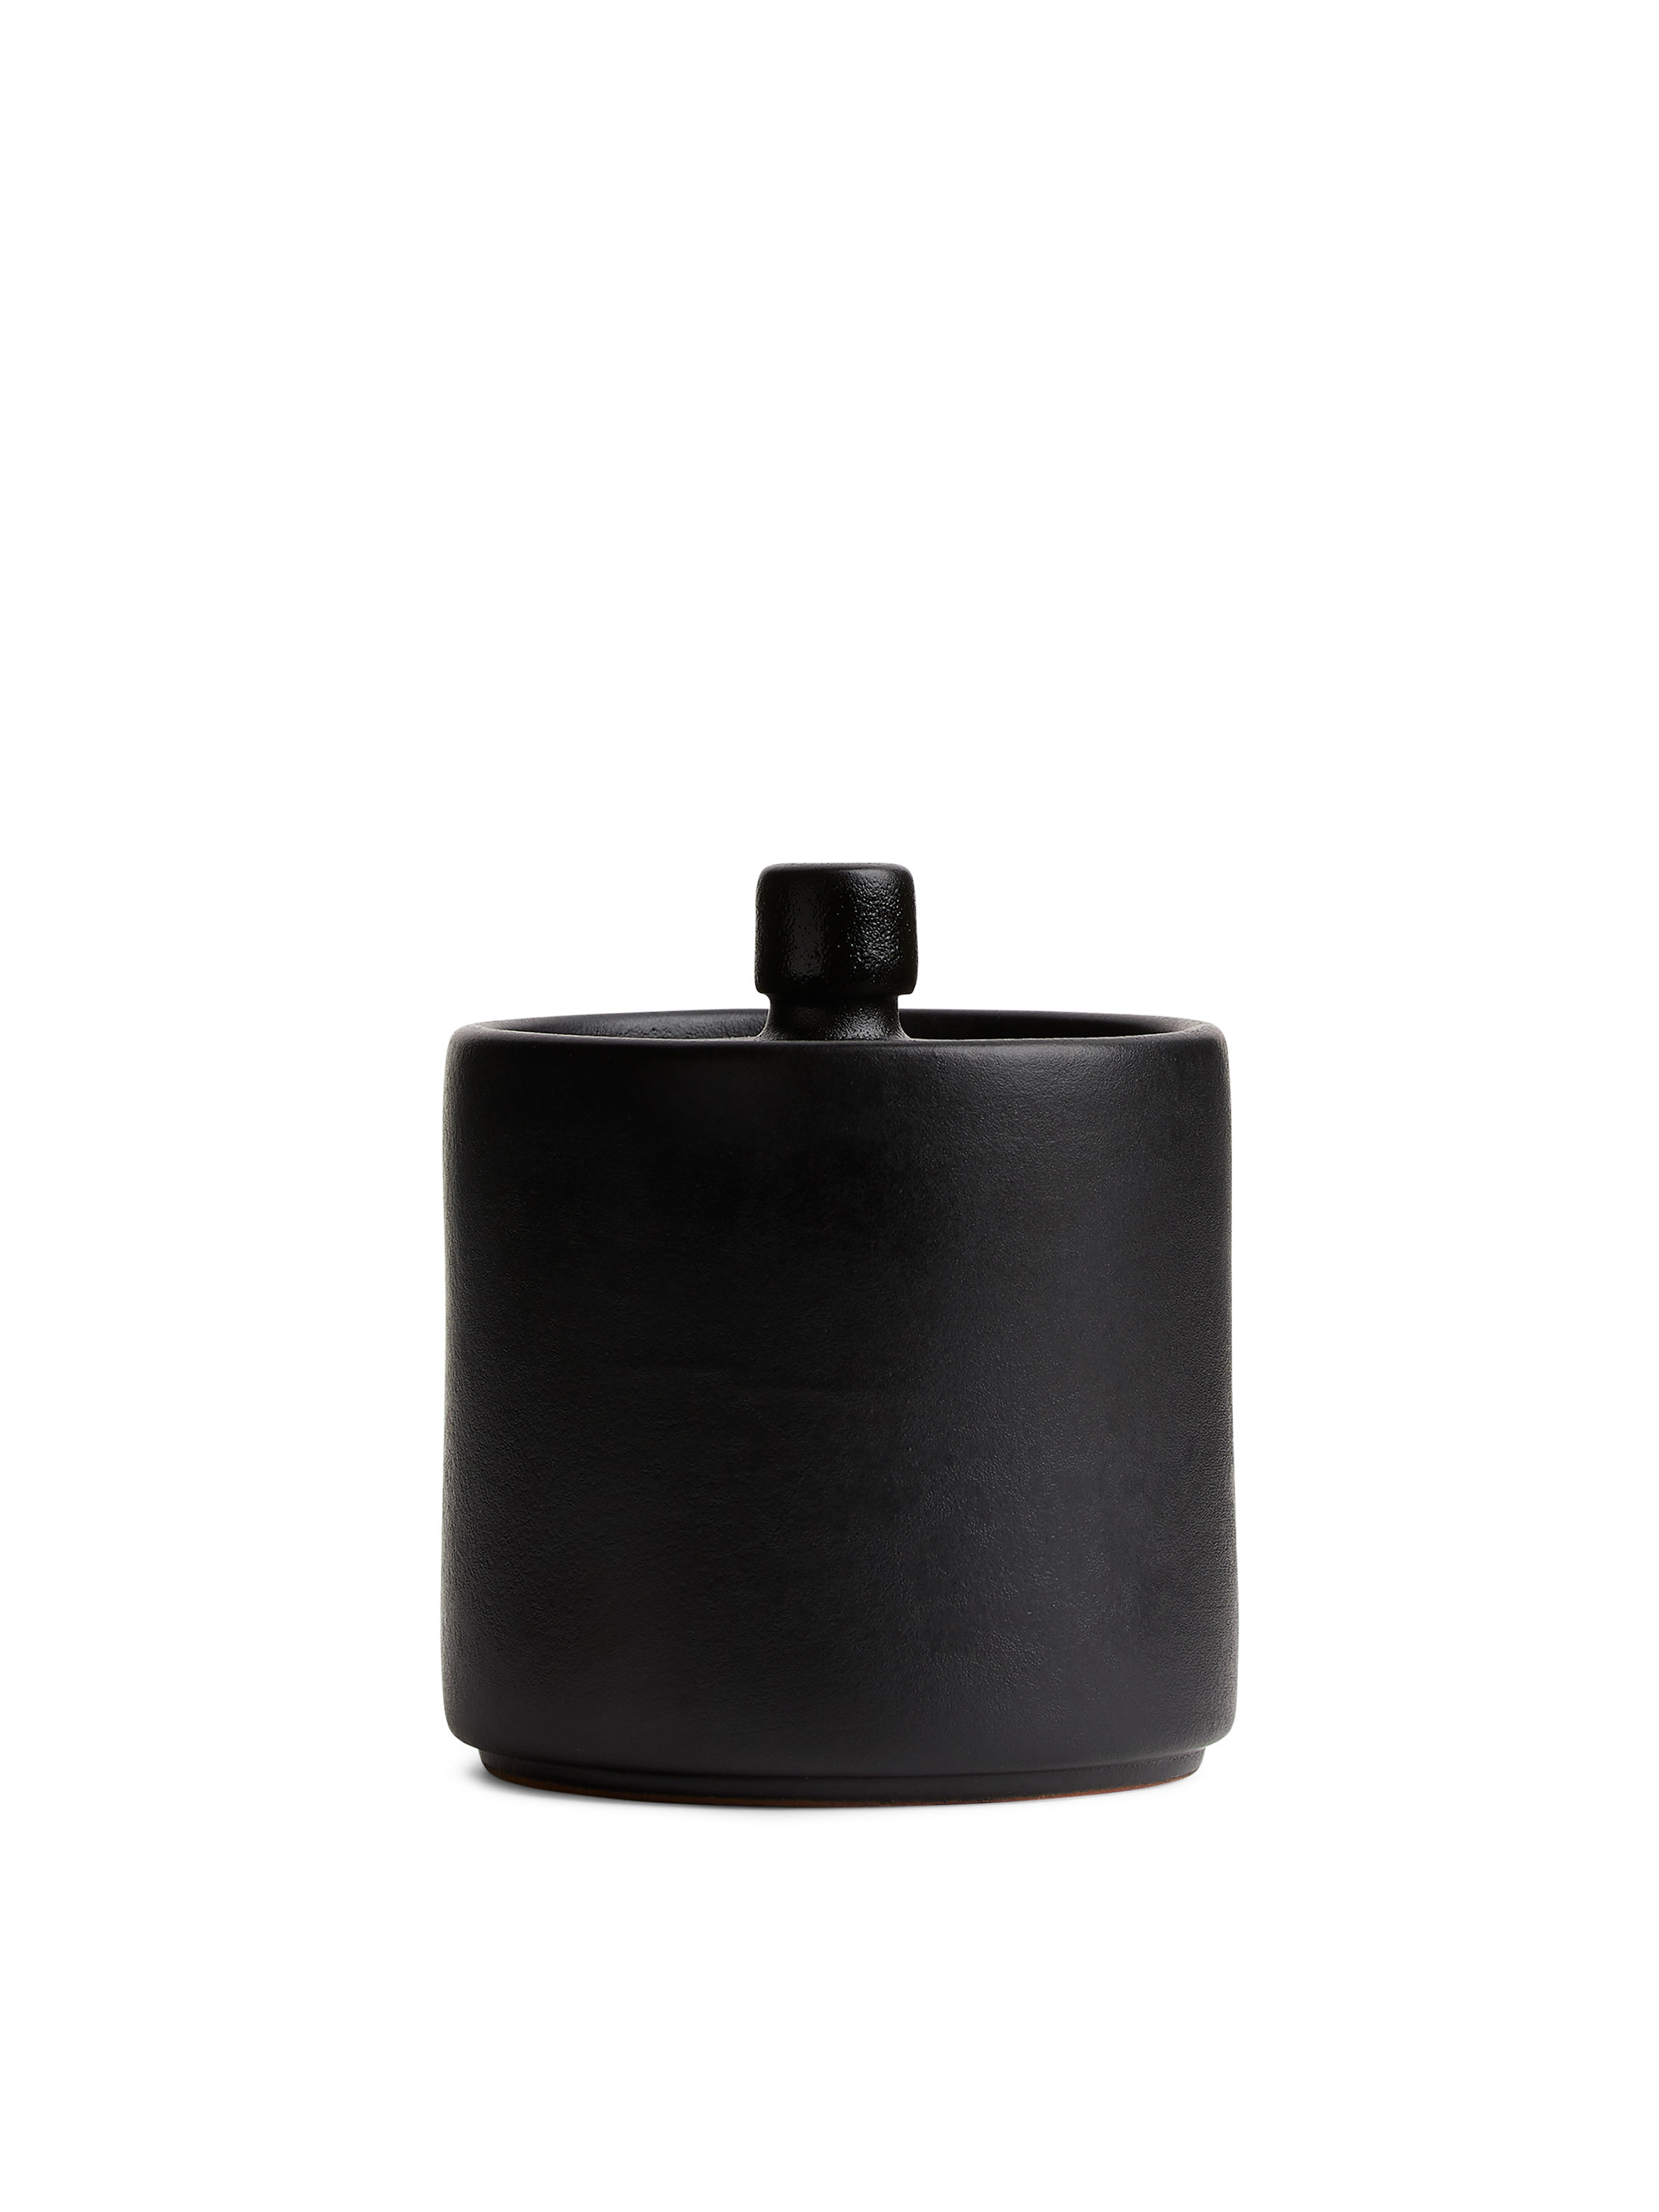 Fabric Swatch image of Arket terracotta canister 7,5 cm in black